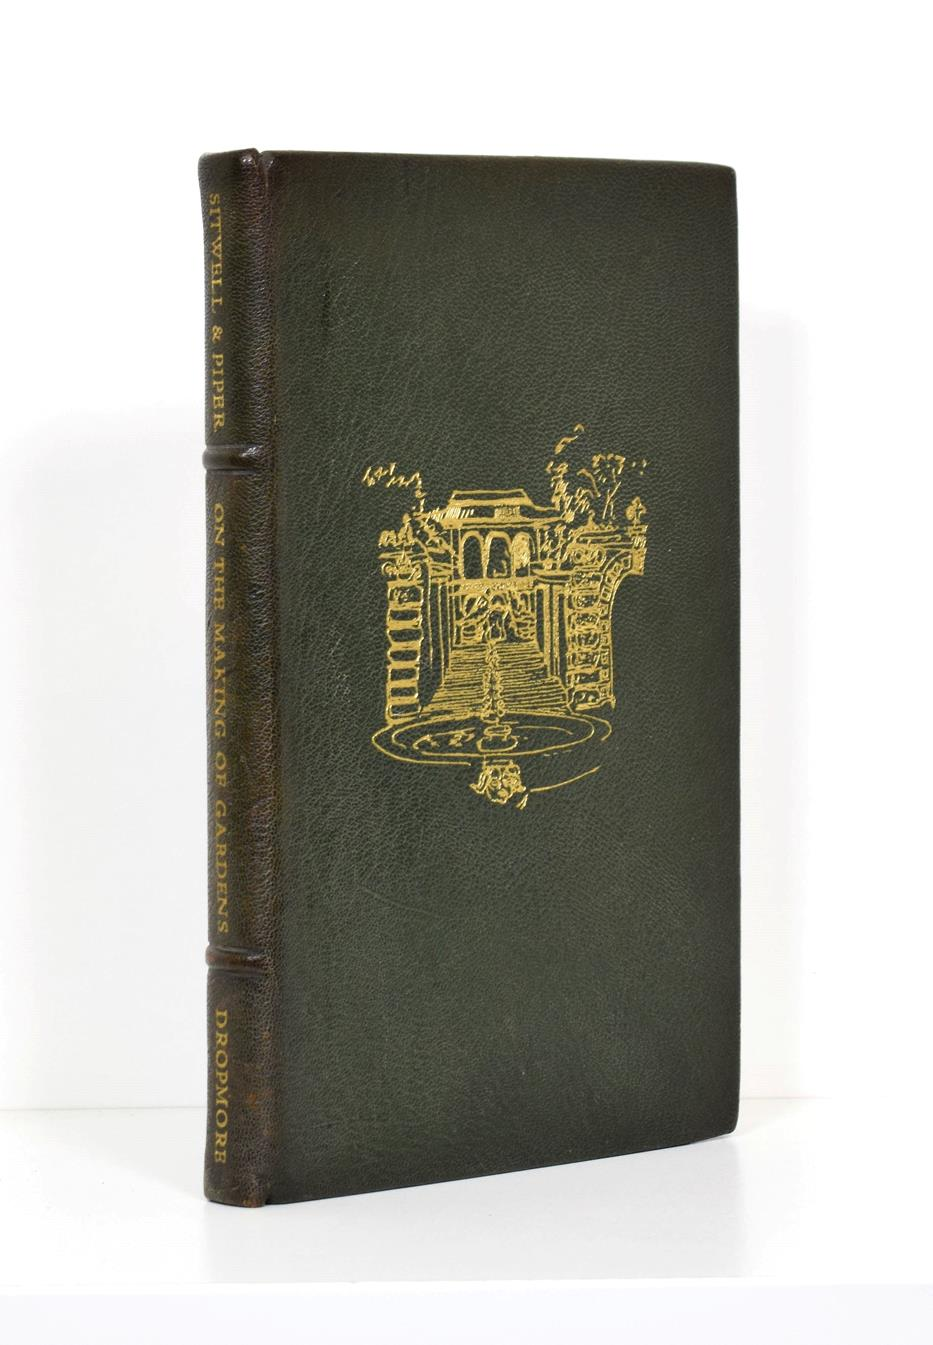 Lot 16 - Sitwell (Sir George) - Piper (John) On the Making of Gardens, Dropmore Press, 1949, numbered...